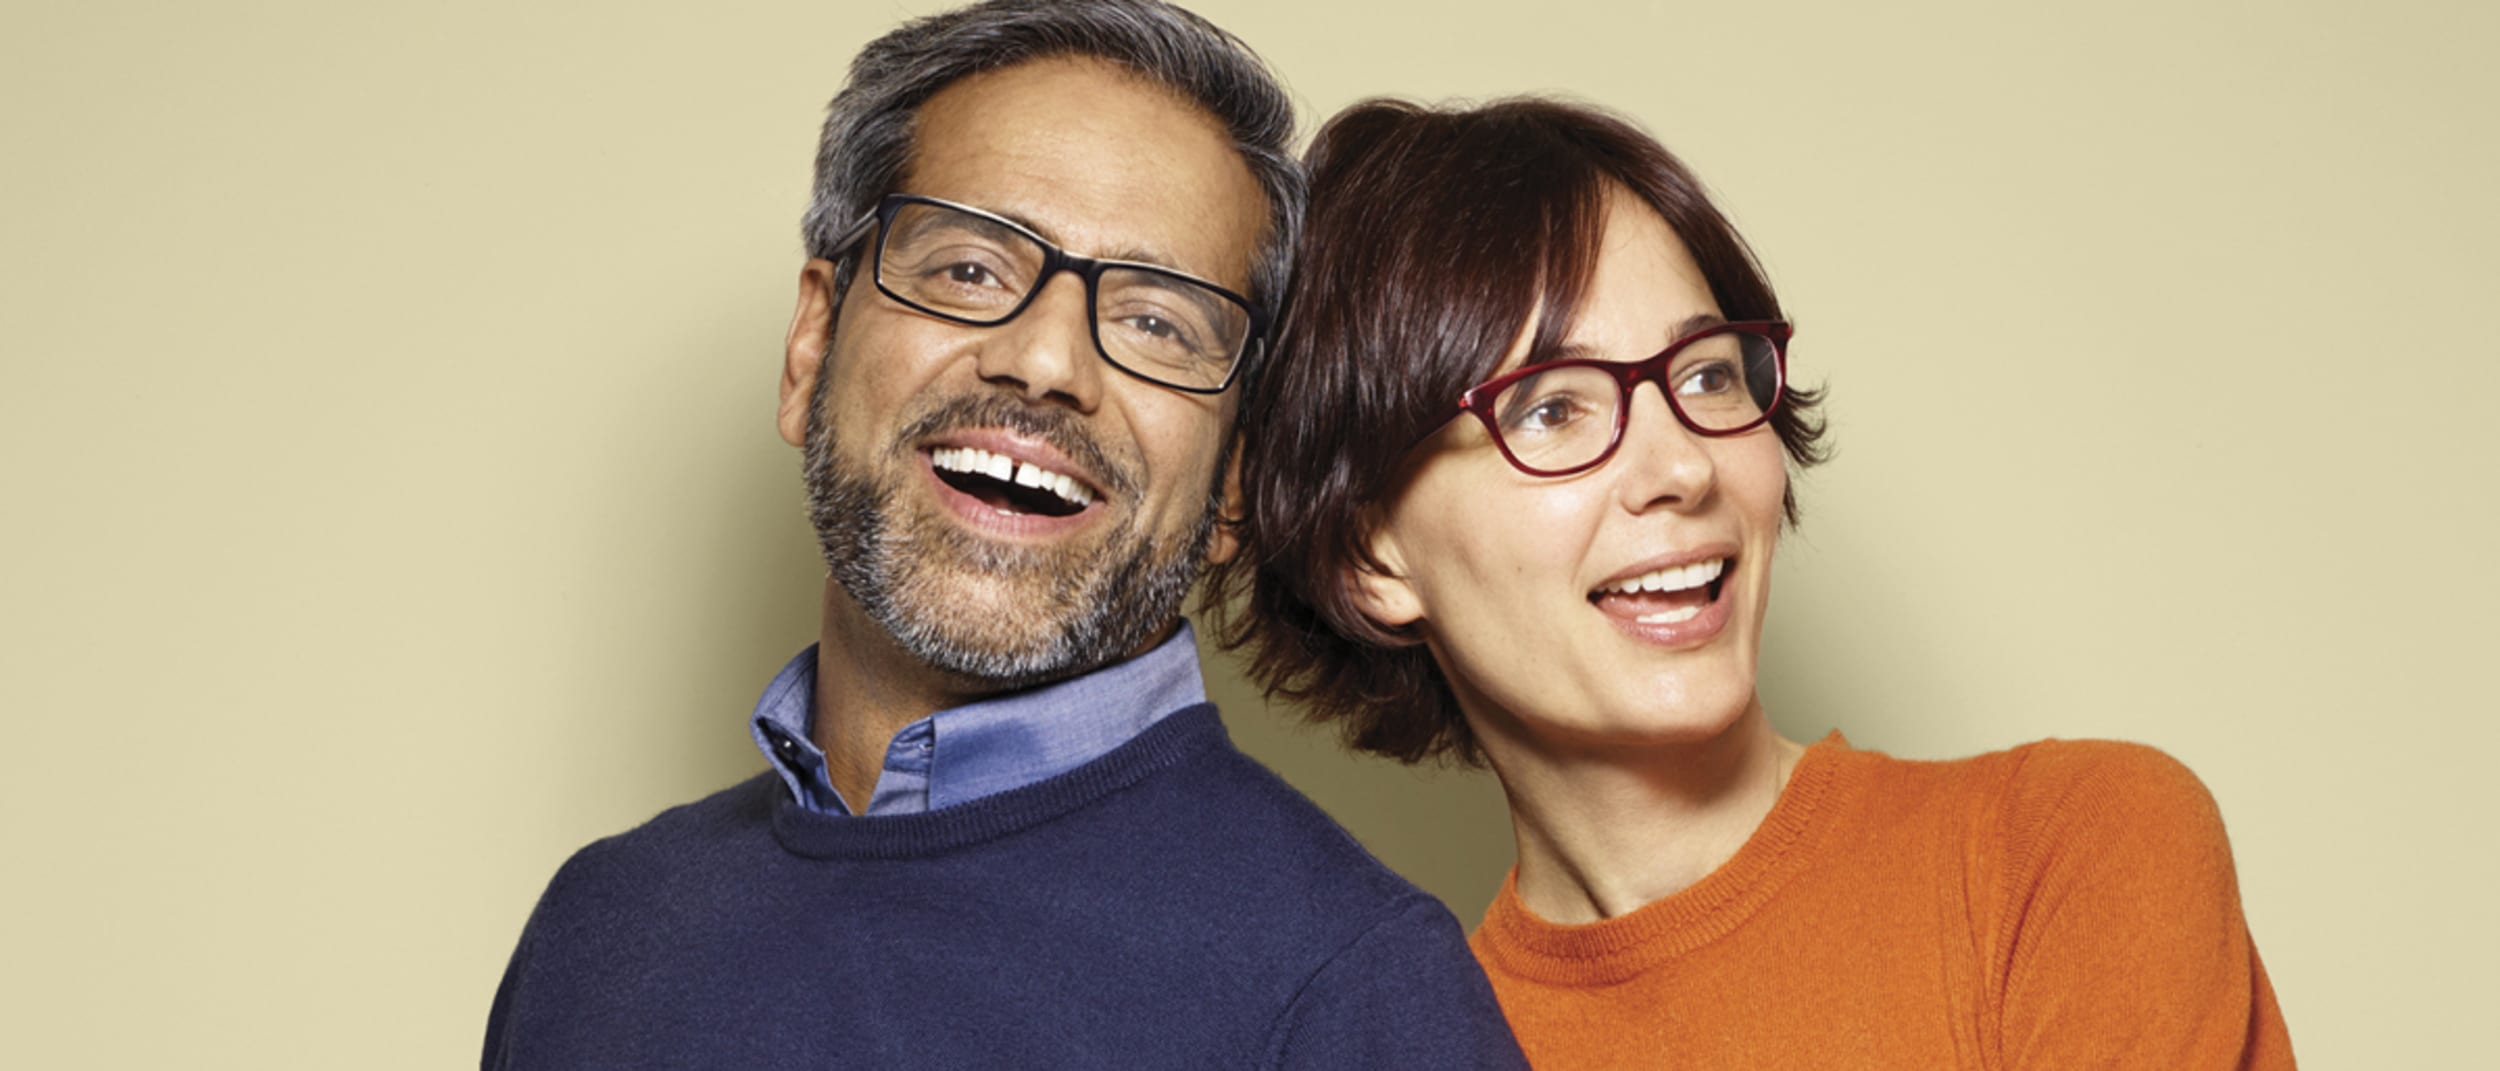 Free multifocal offer